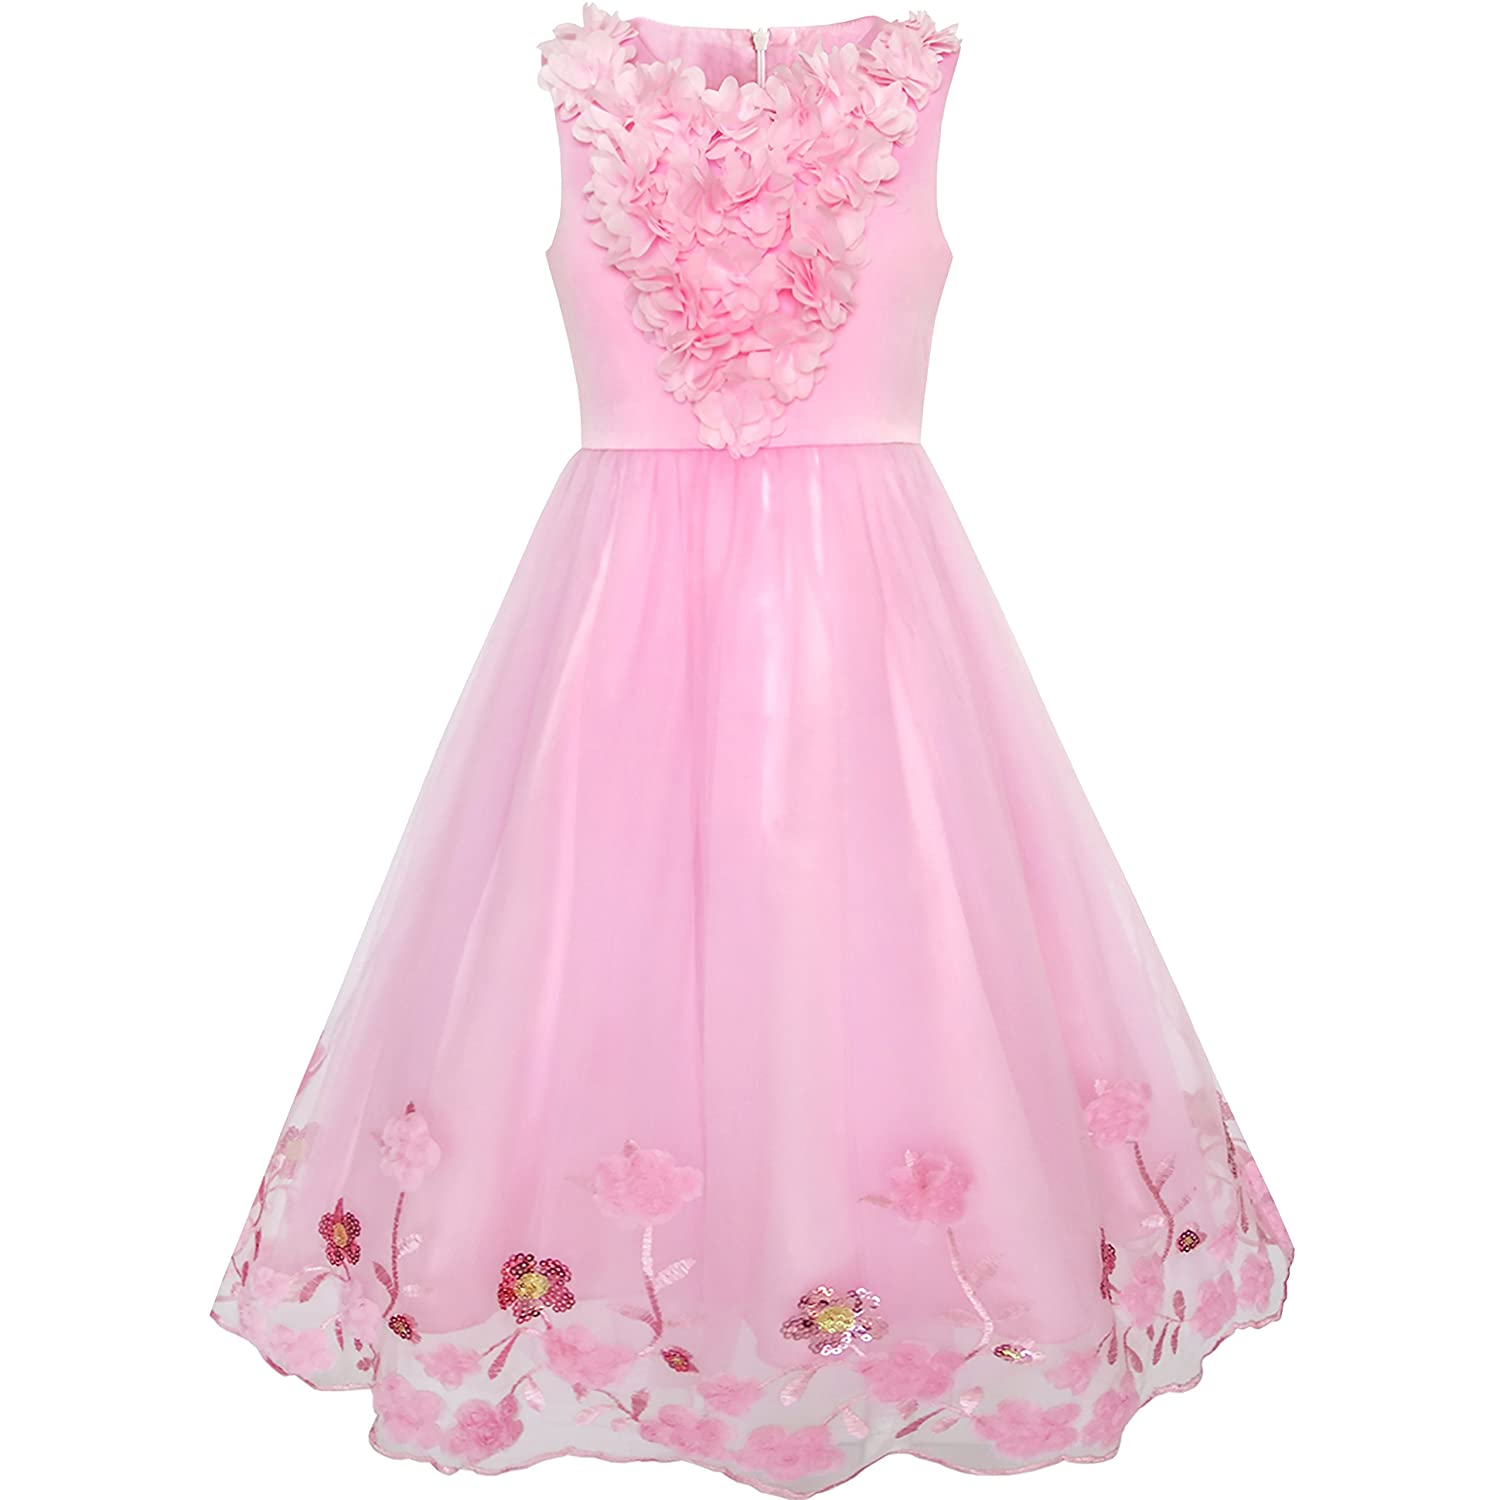 Sunny Fashion Flower Girls Dress Sequin dimensional Flowers Pageant Party